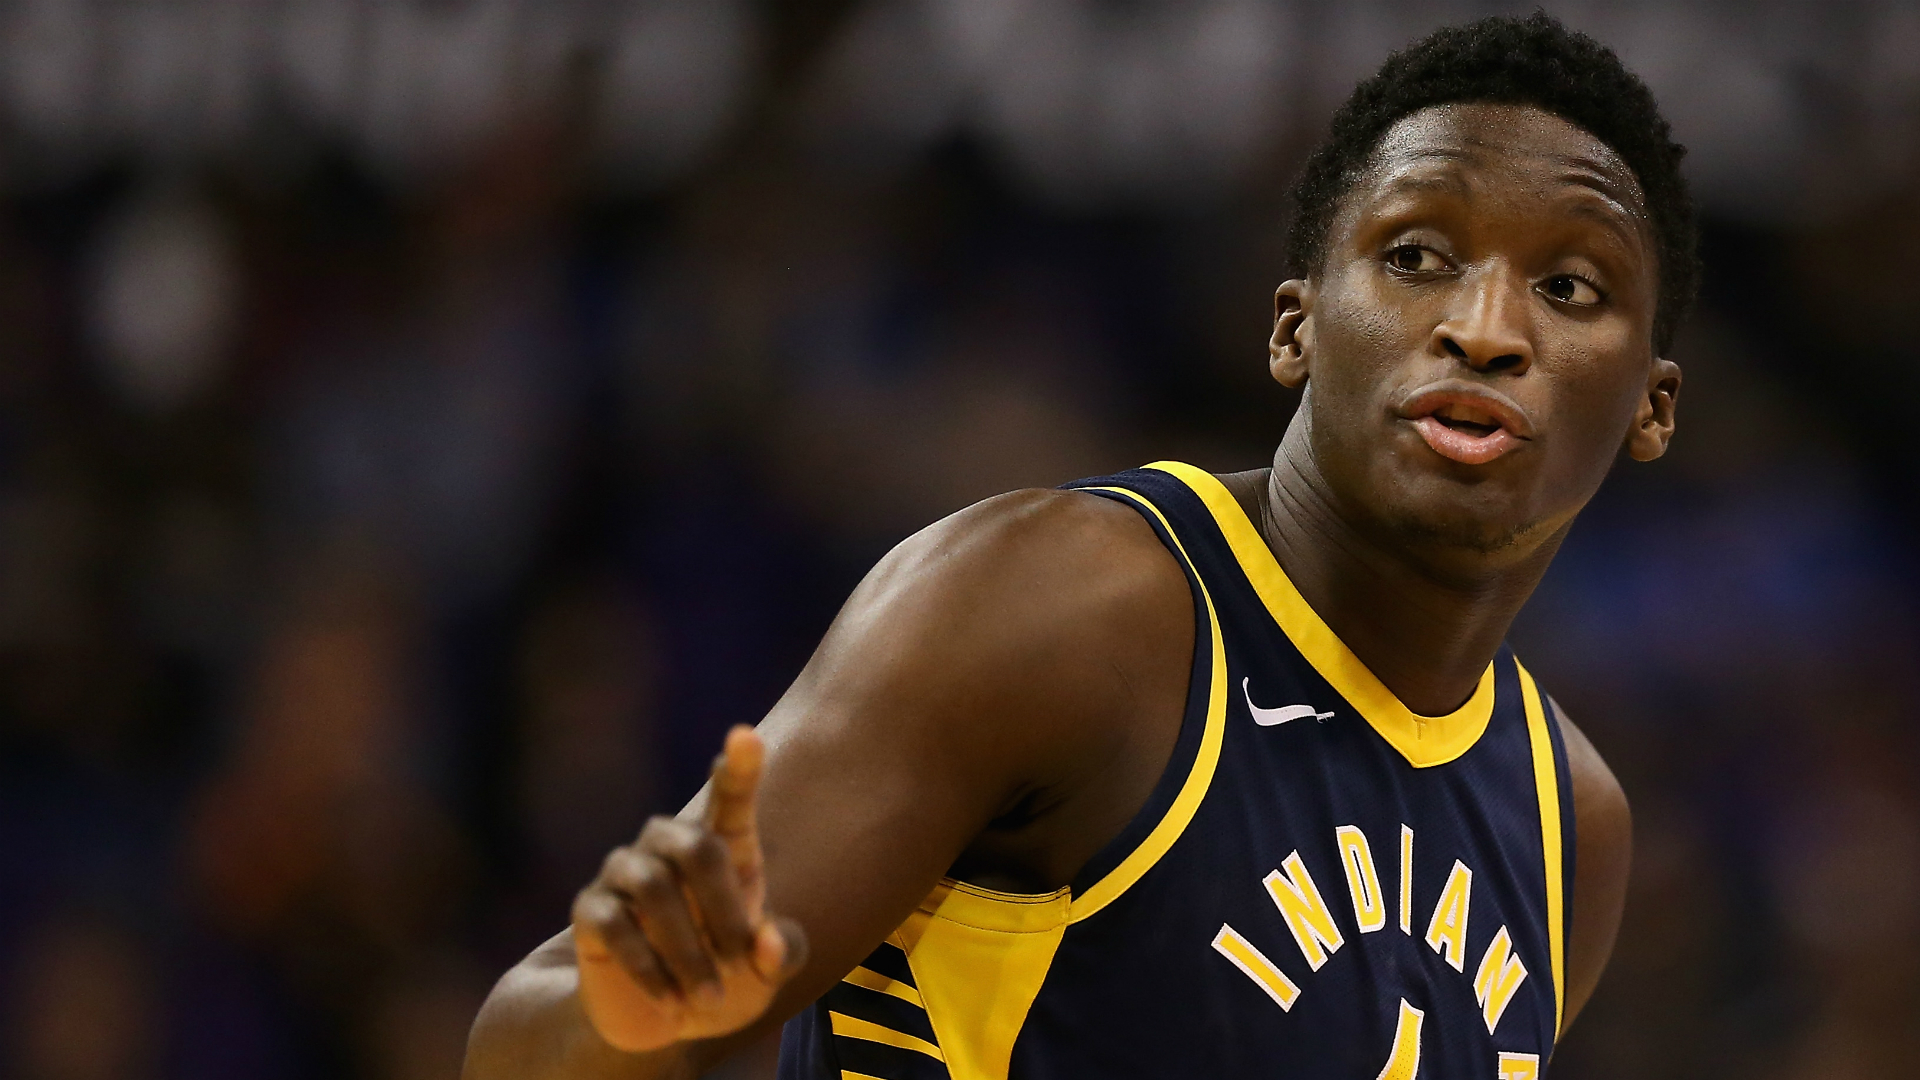 Pacers' Victor Oladipo in 'a good position mentally,' Nate McMillan says